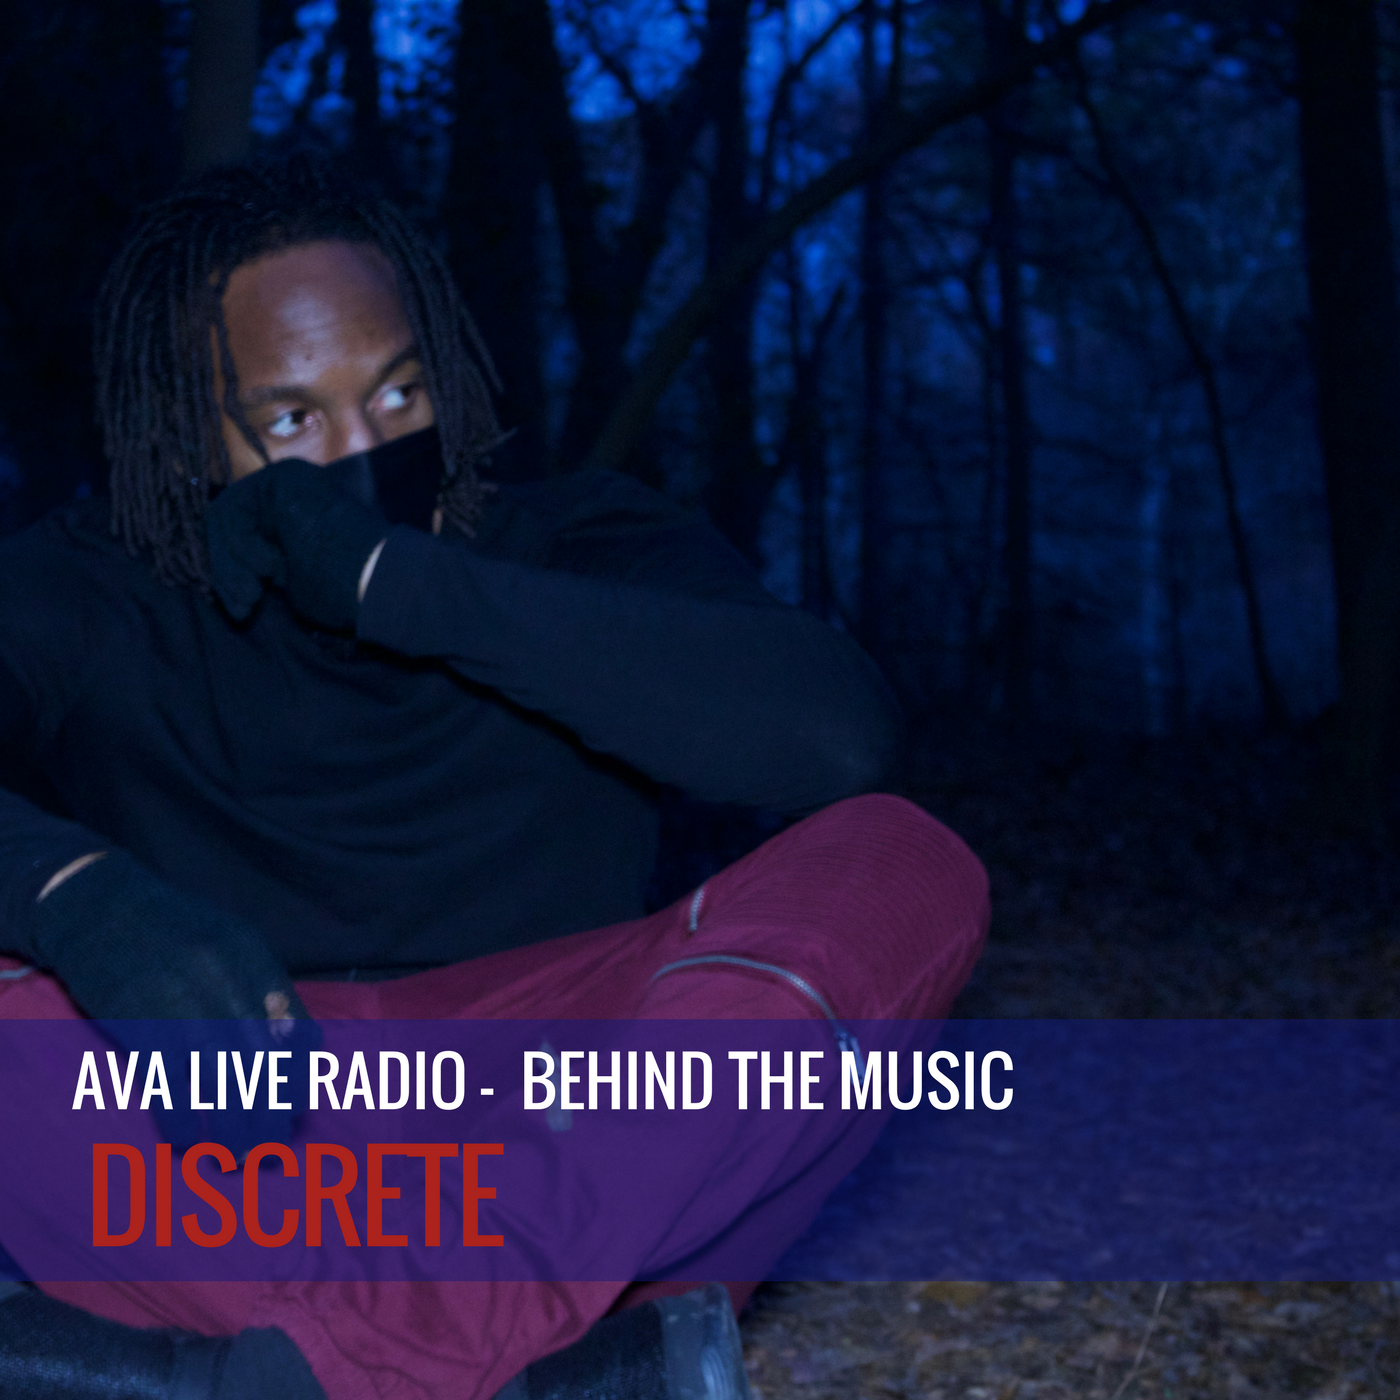 Behind The Music With Discrete and His New Song Woke